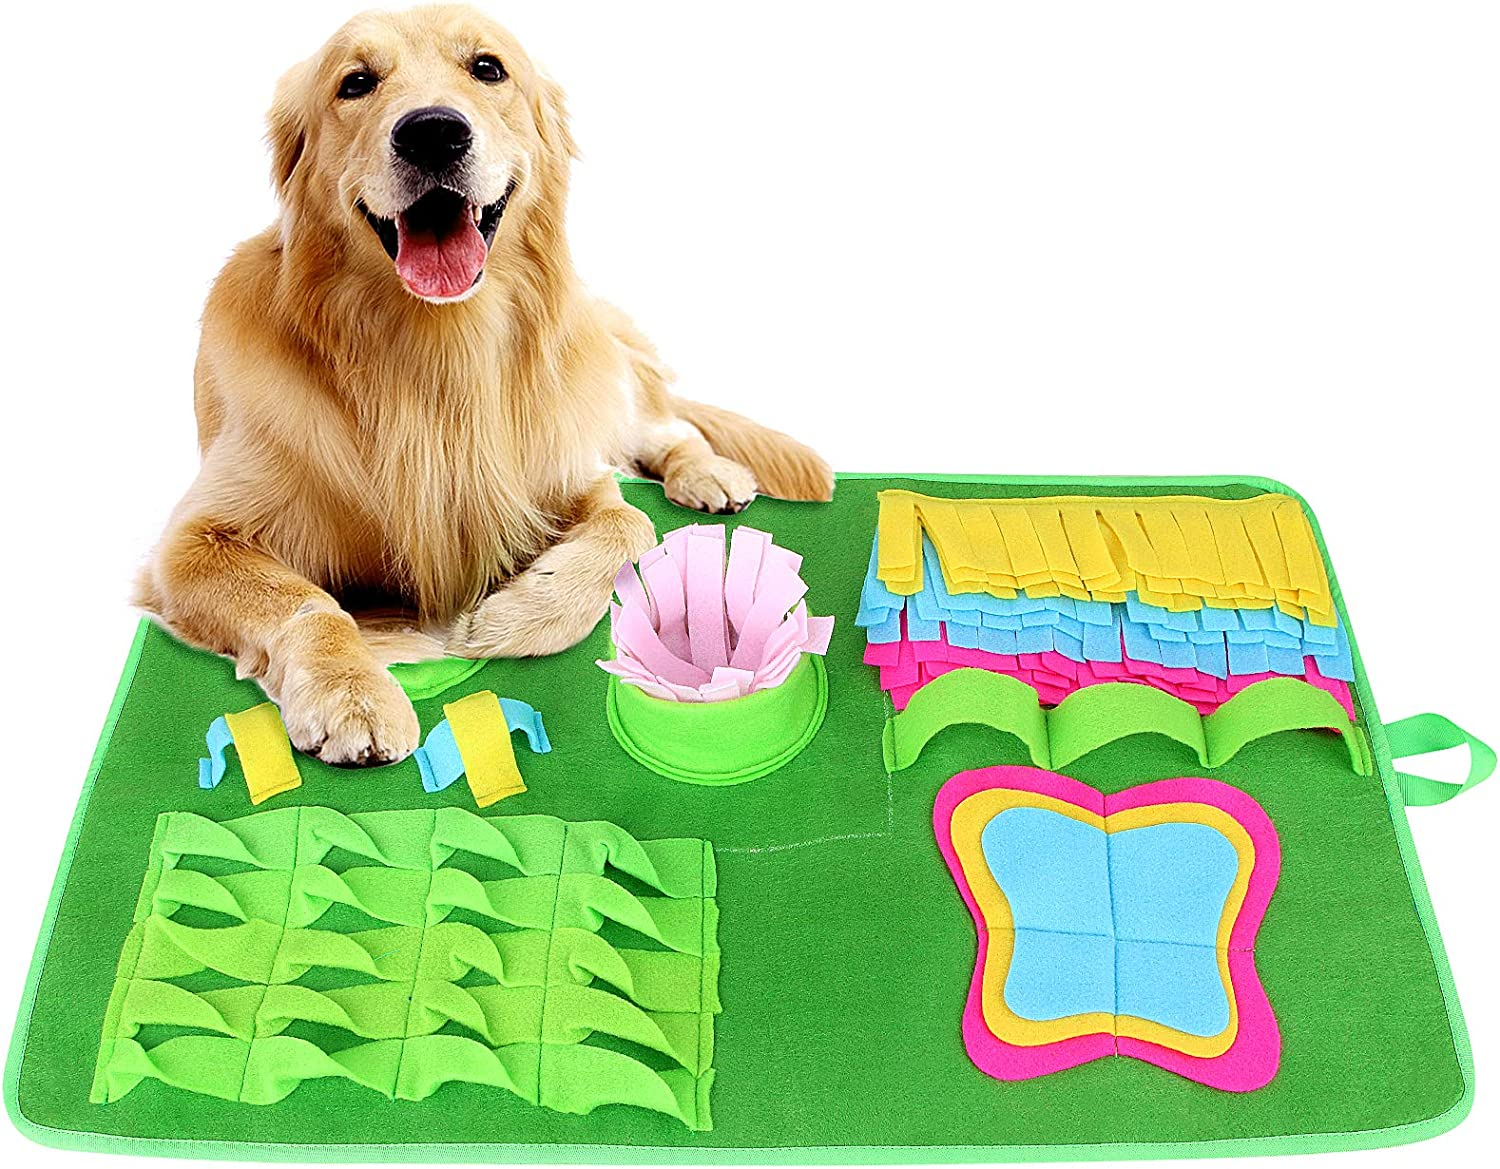 synmixx Dog Snuffle Mat Pet Dog Feeding Mat- Durable Interactive Dog Toys Encourages Natural Foraging Skills,Dog Play Mat Sniffing Training Pad Fun Mats, Great for Stress Release